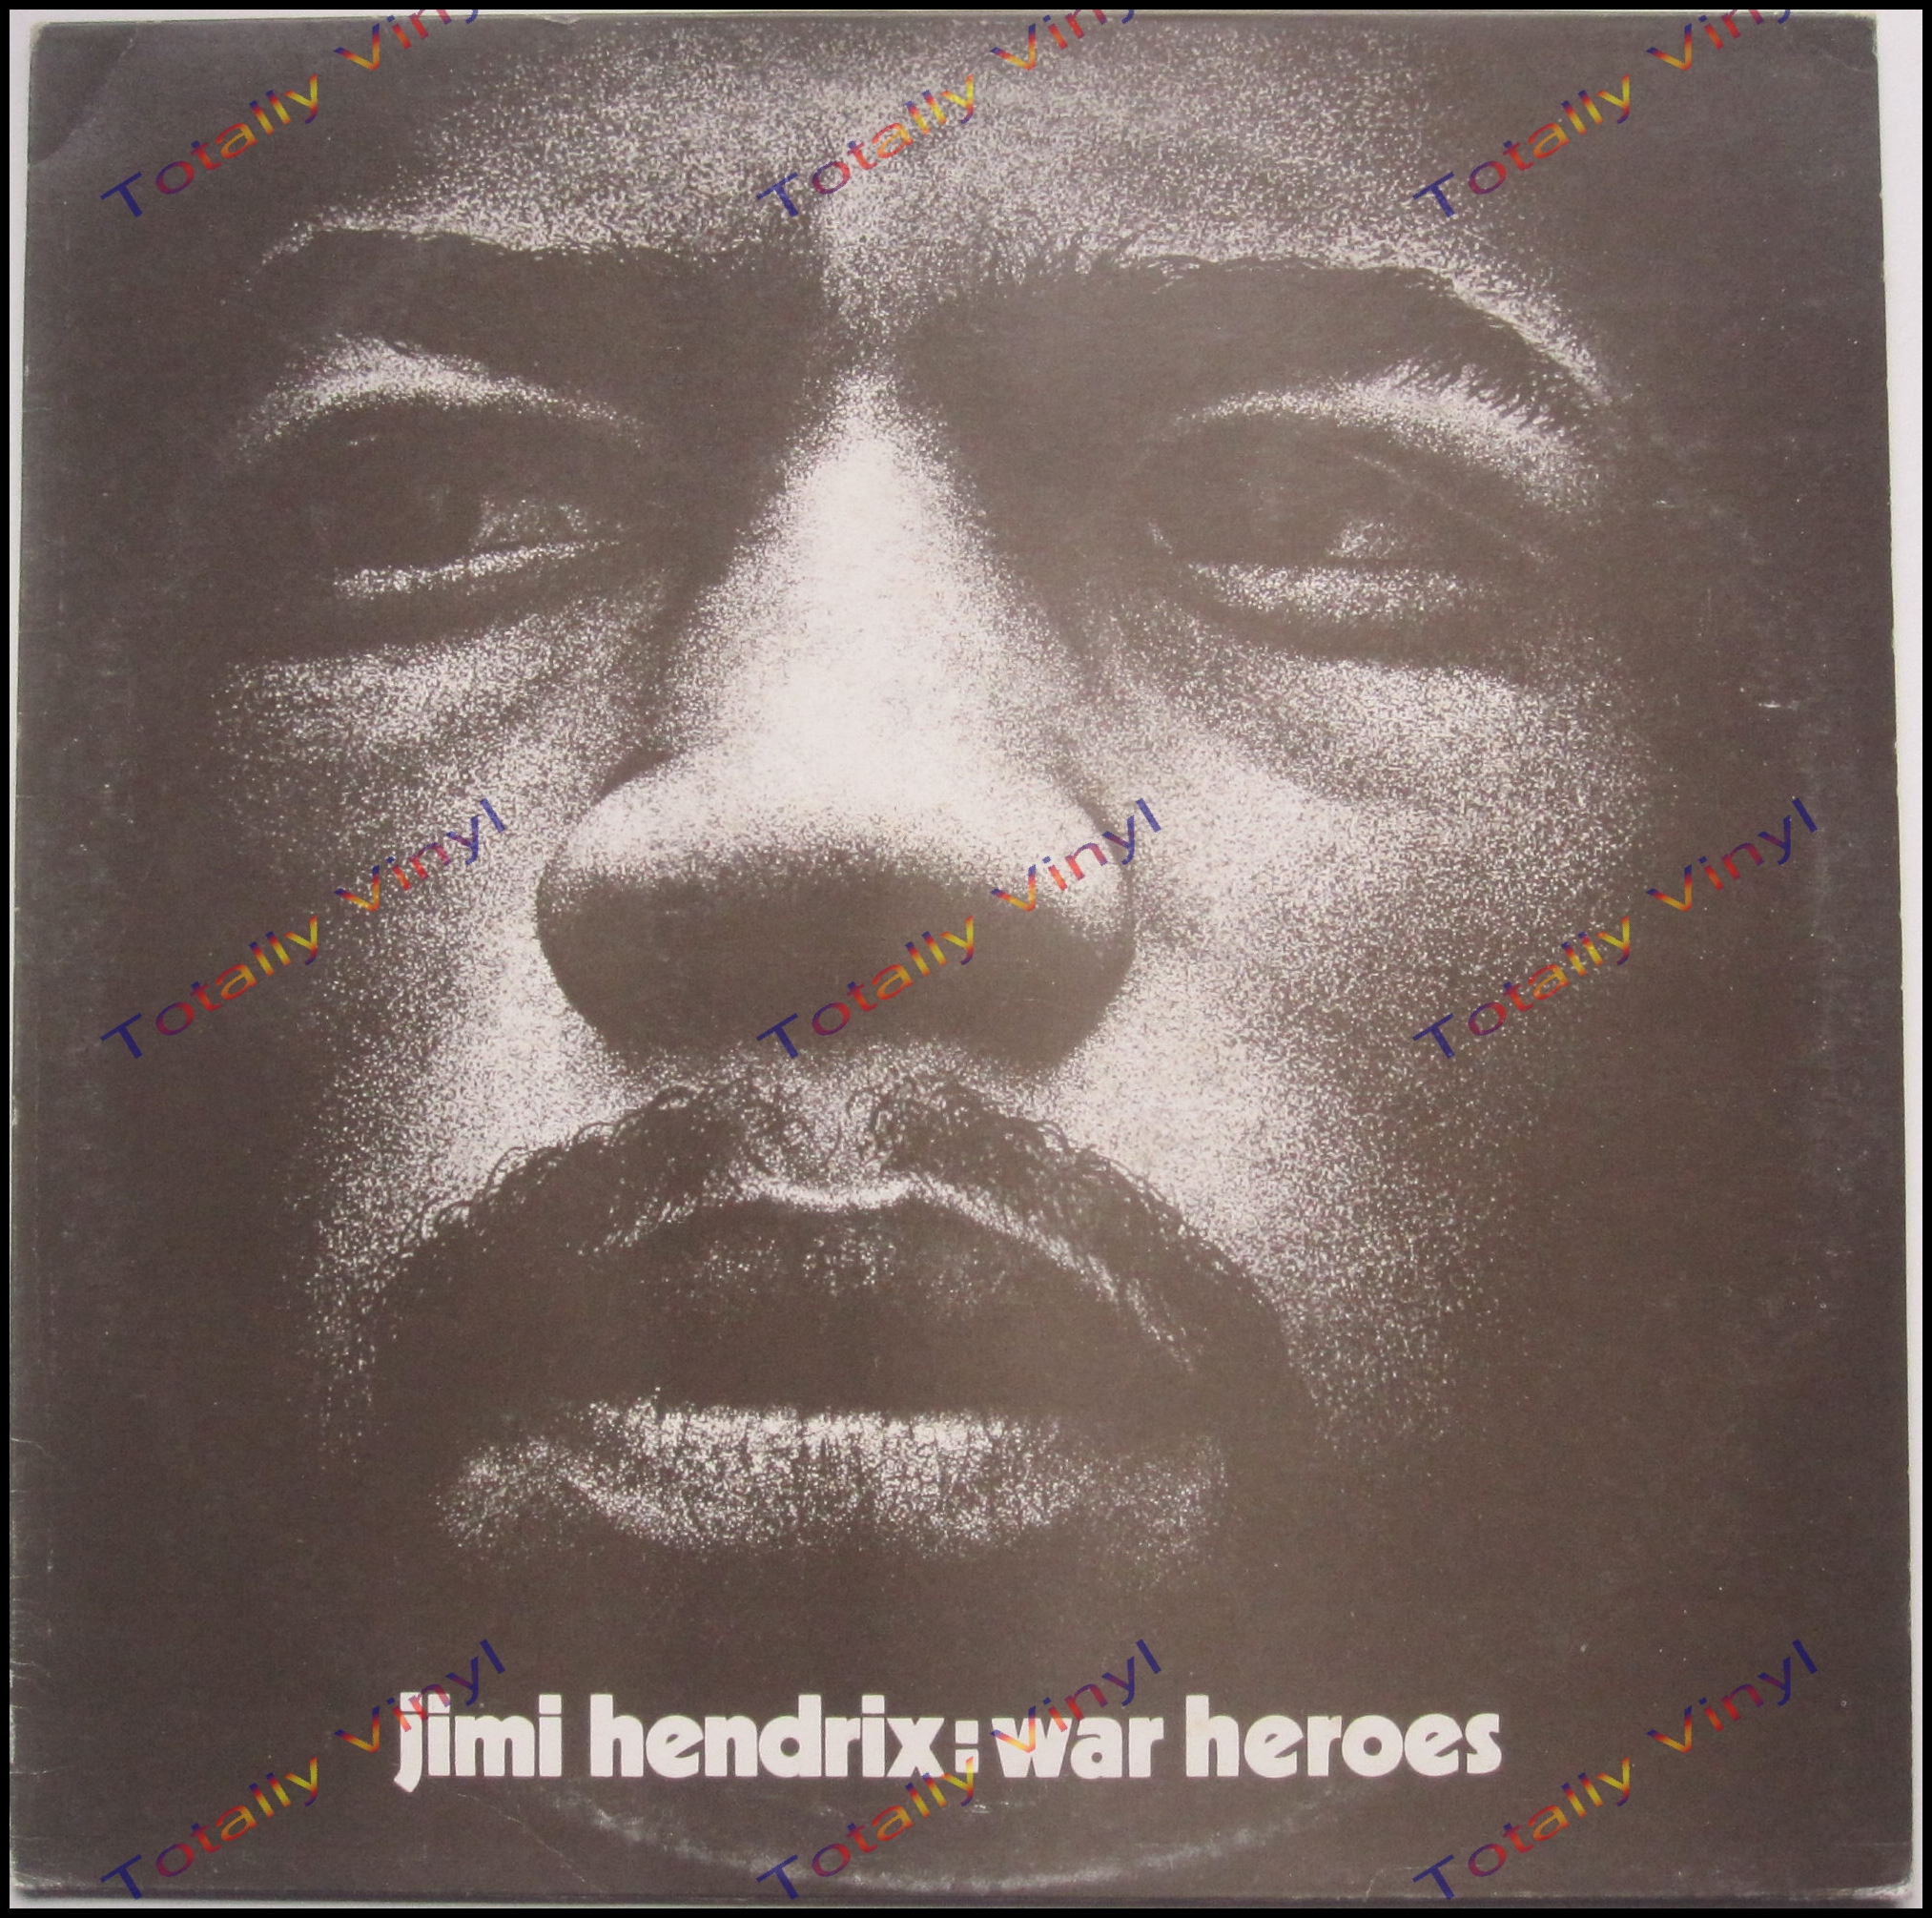 totally vinyl records hendrix jimi war heroes lp promotional issue. Black Bedroom Furniture Sets. Home Design Ideas